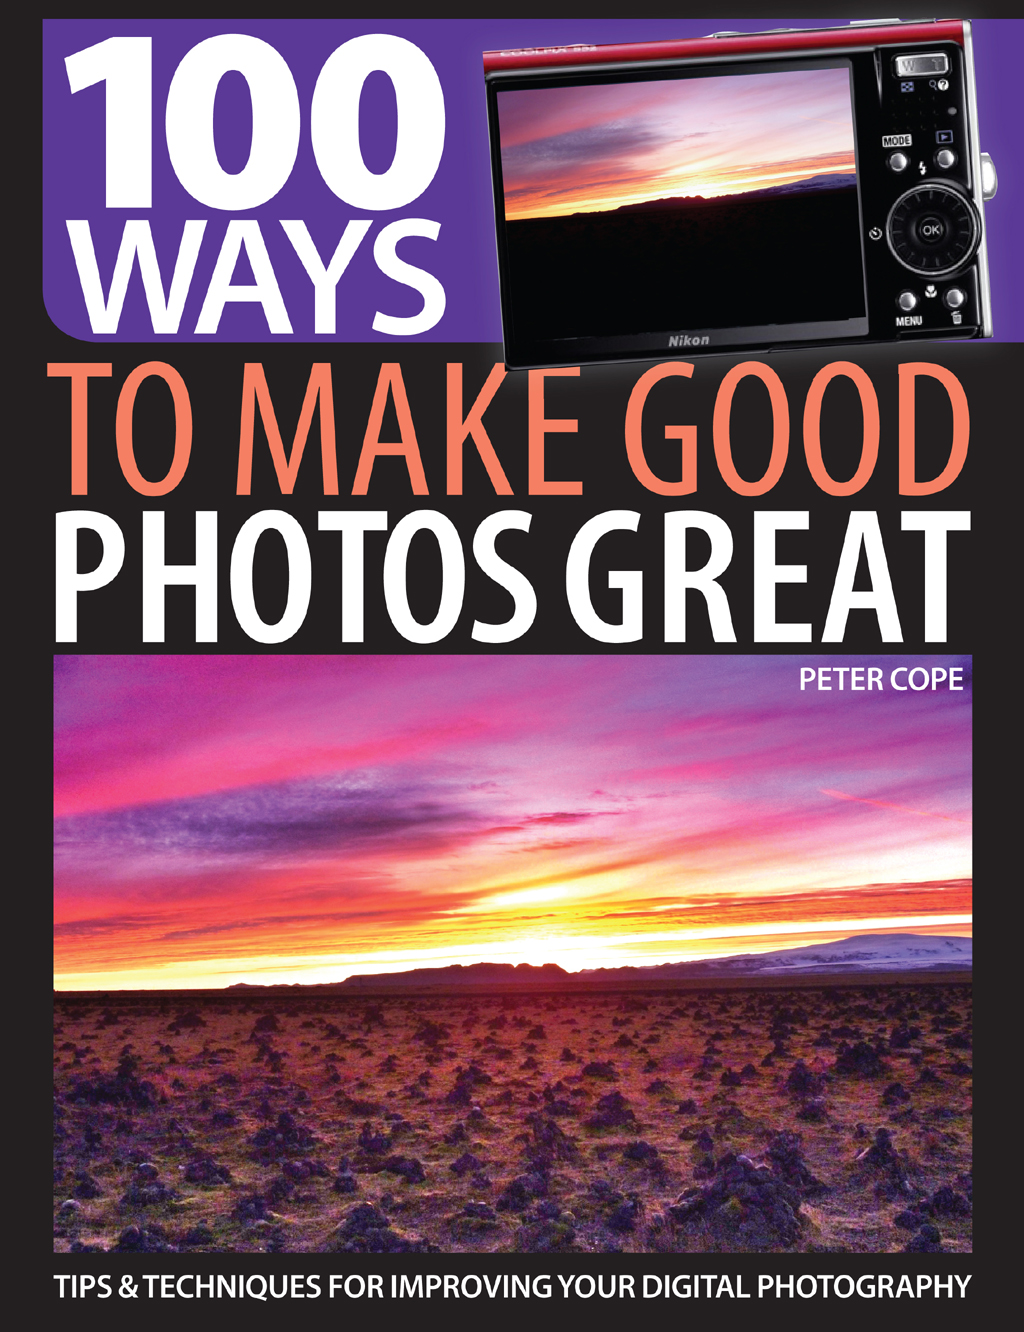 100 Ways to Make Good Photos Great Tips & Techniques for Improving Your Digital Photography